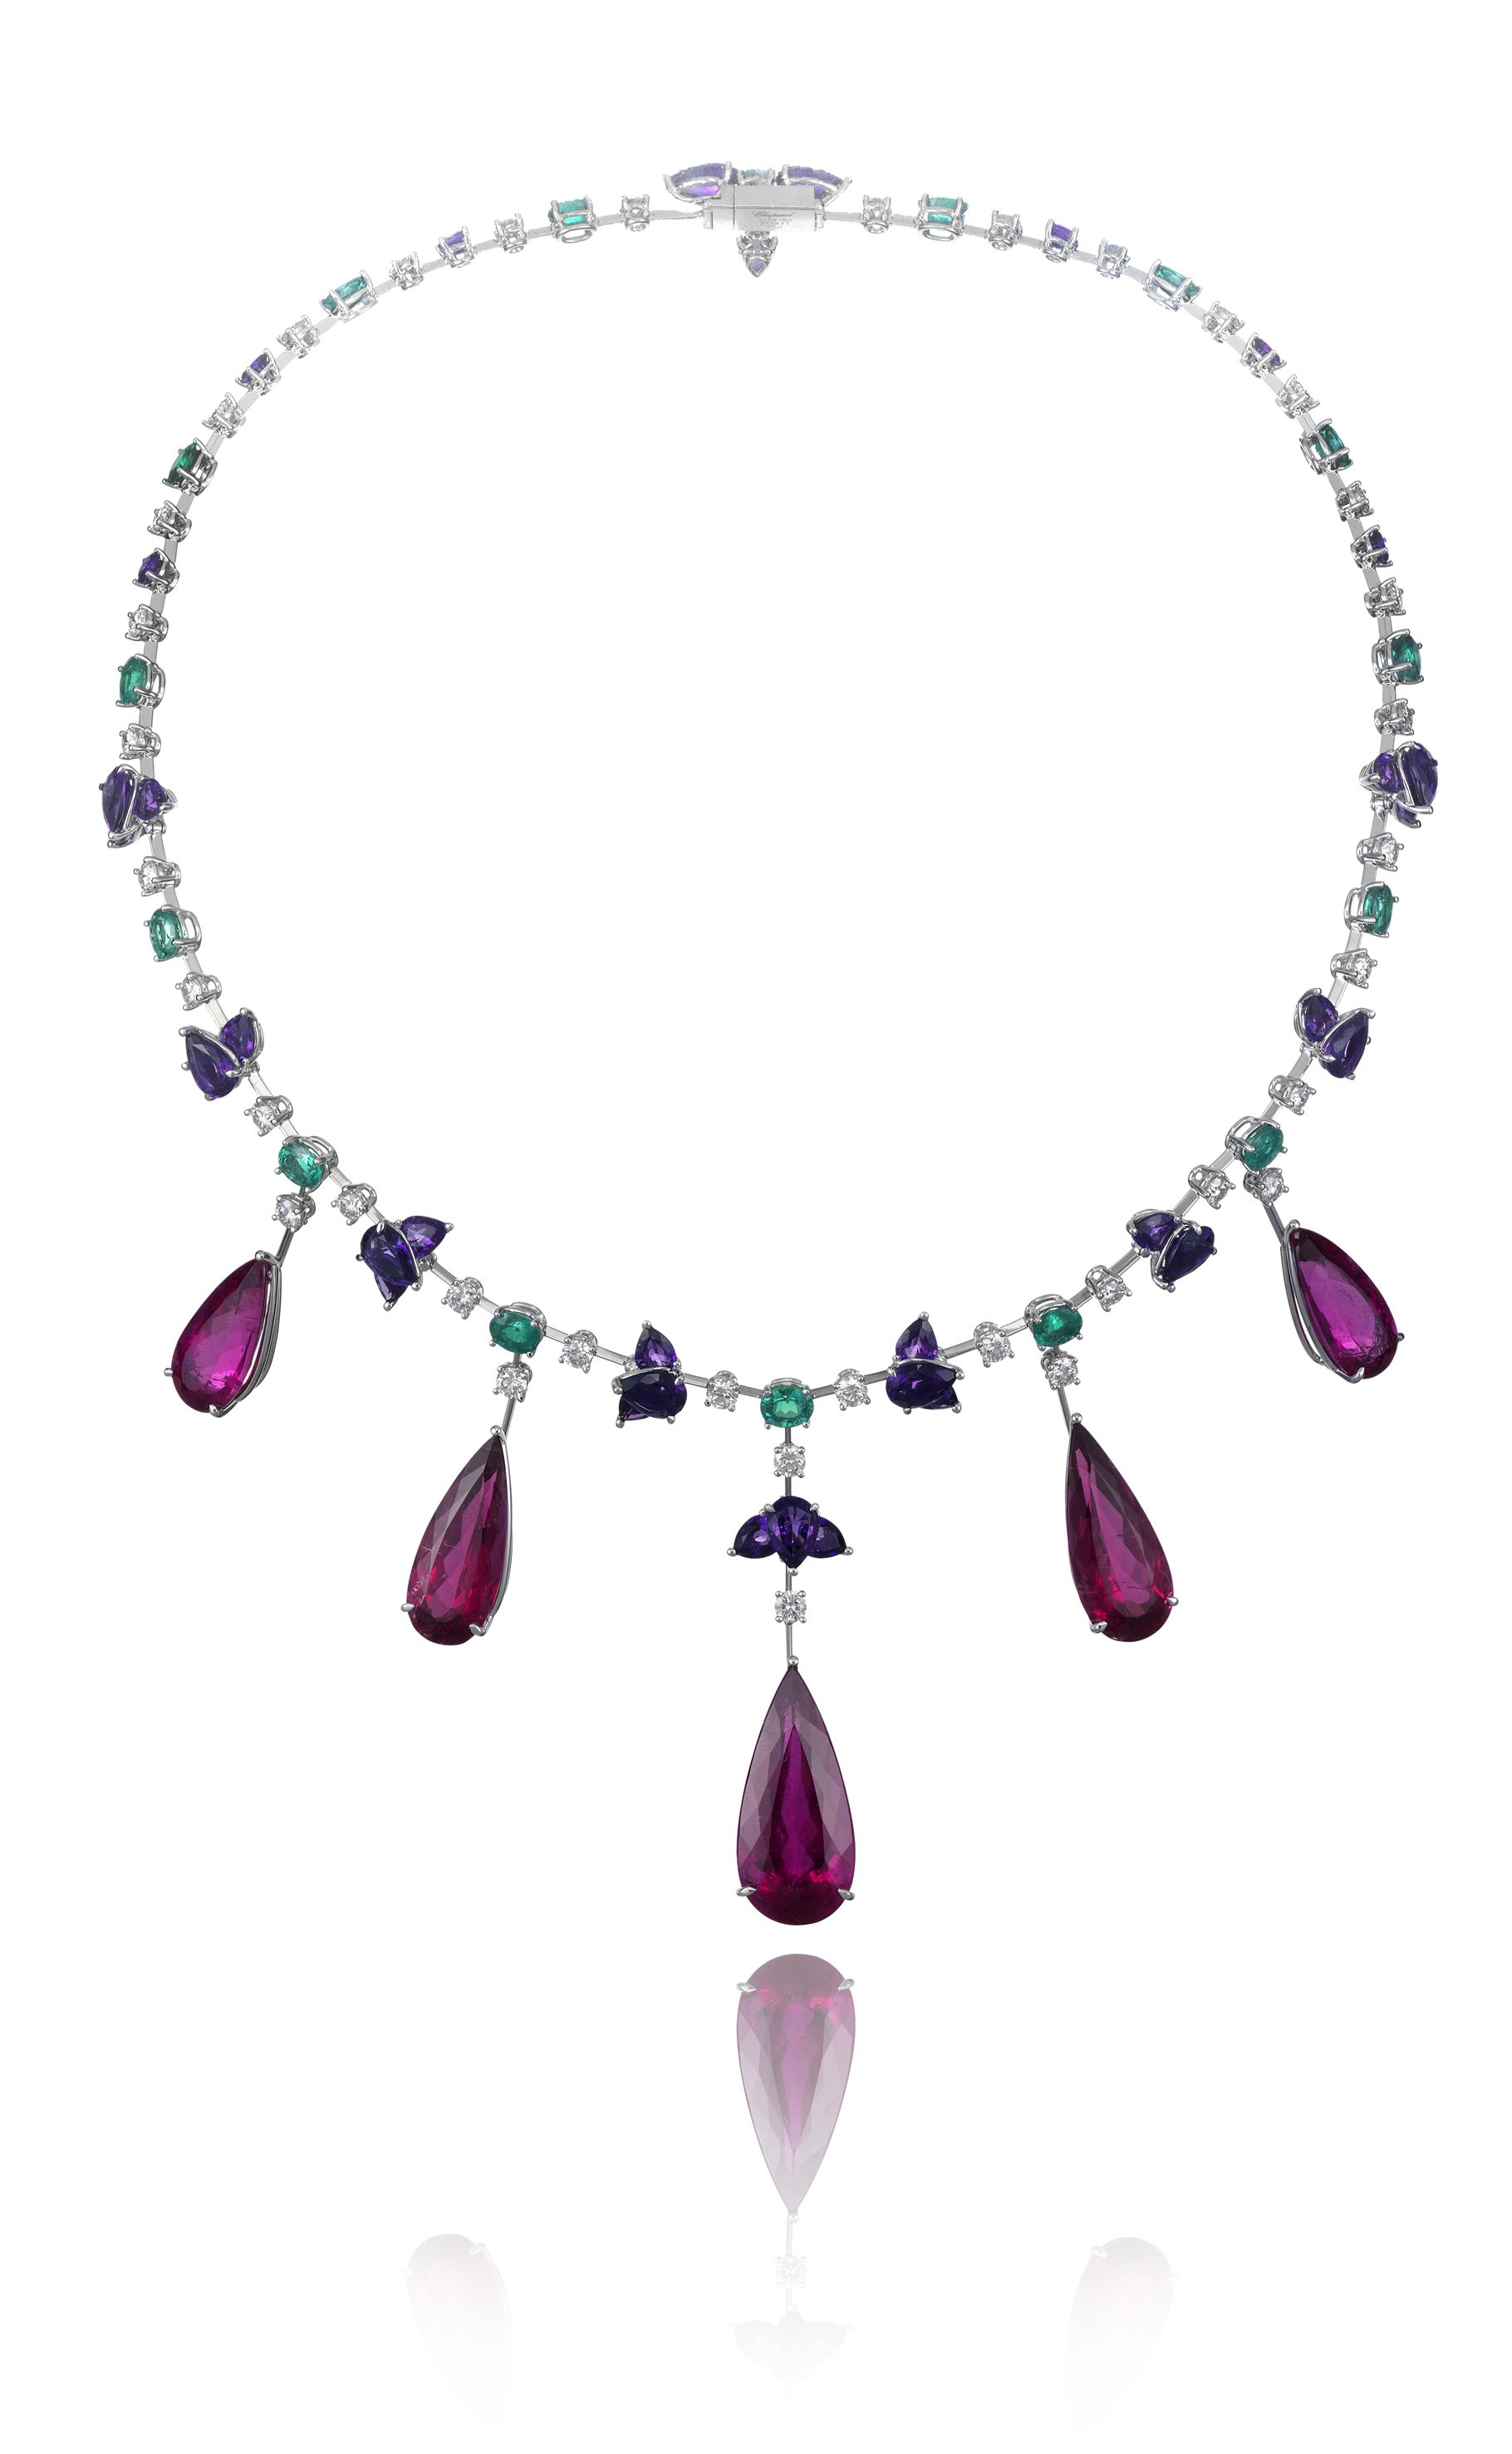 Chopard Rubellite Necklace, part of the Red Carpet Collection ...